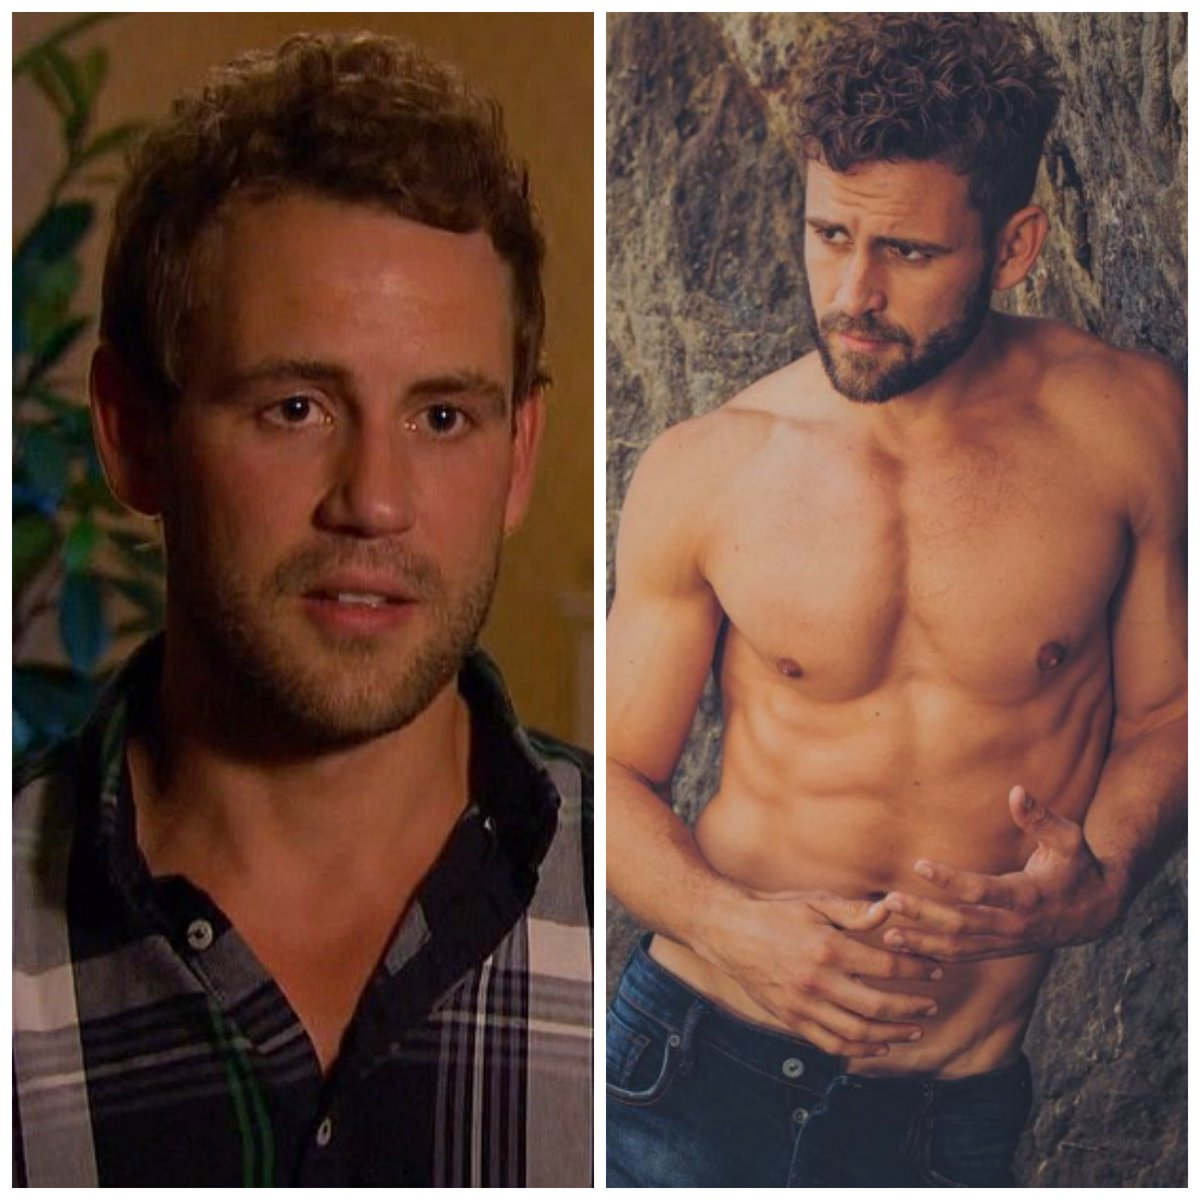 Just a visual reminder of Villain Nick from Andi's season vs The Next Bachelor Nick. #BachelorInParadise https://t.co/zRsEDXUXOP